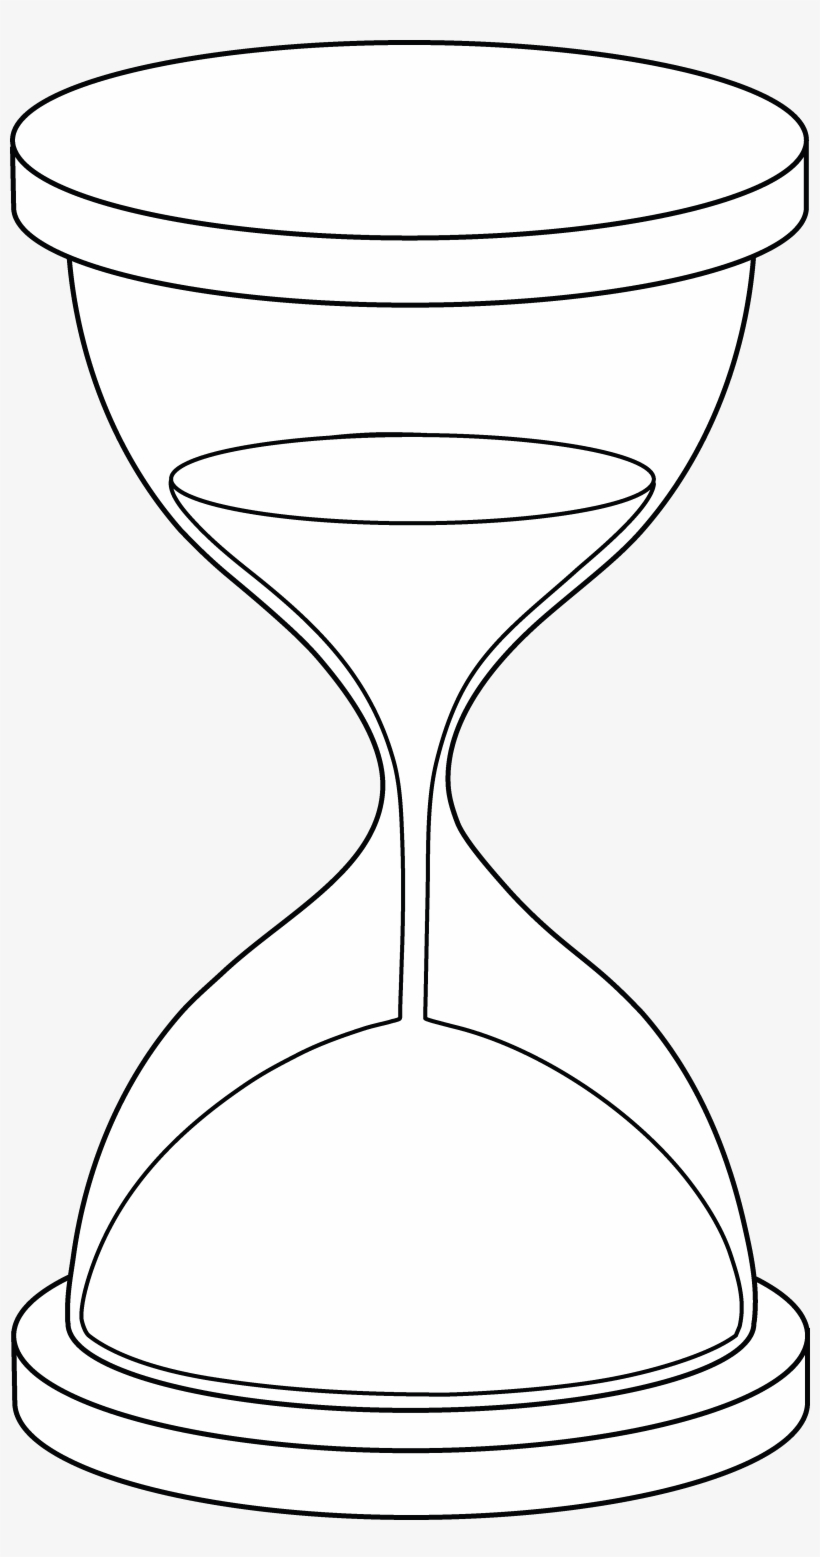 hight resolution of clipart stock hourglass clipart sand timer white hourglass clipart